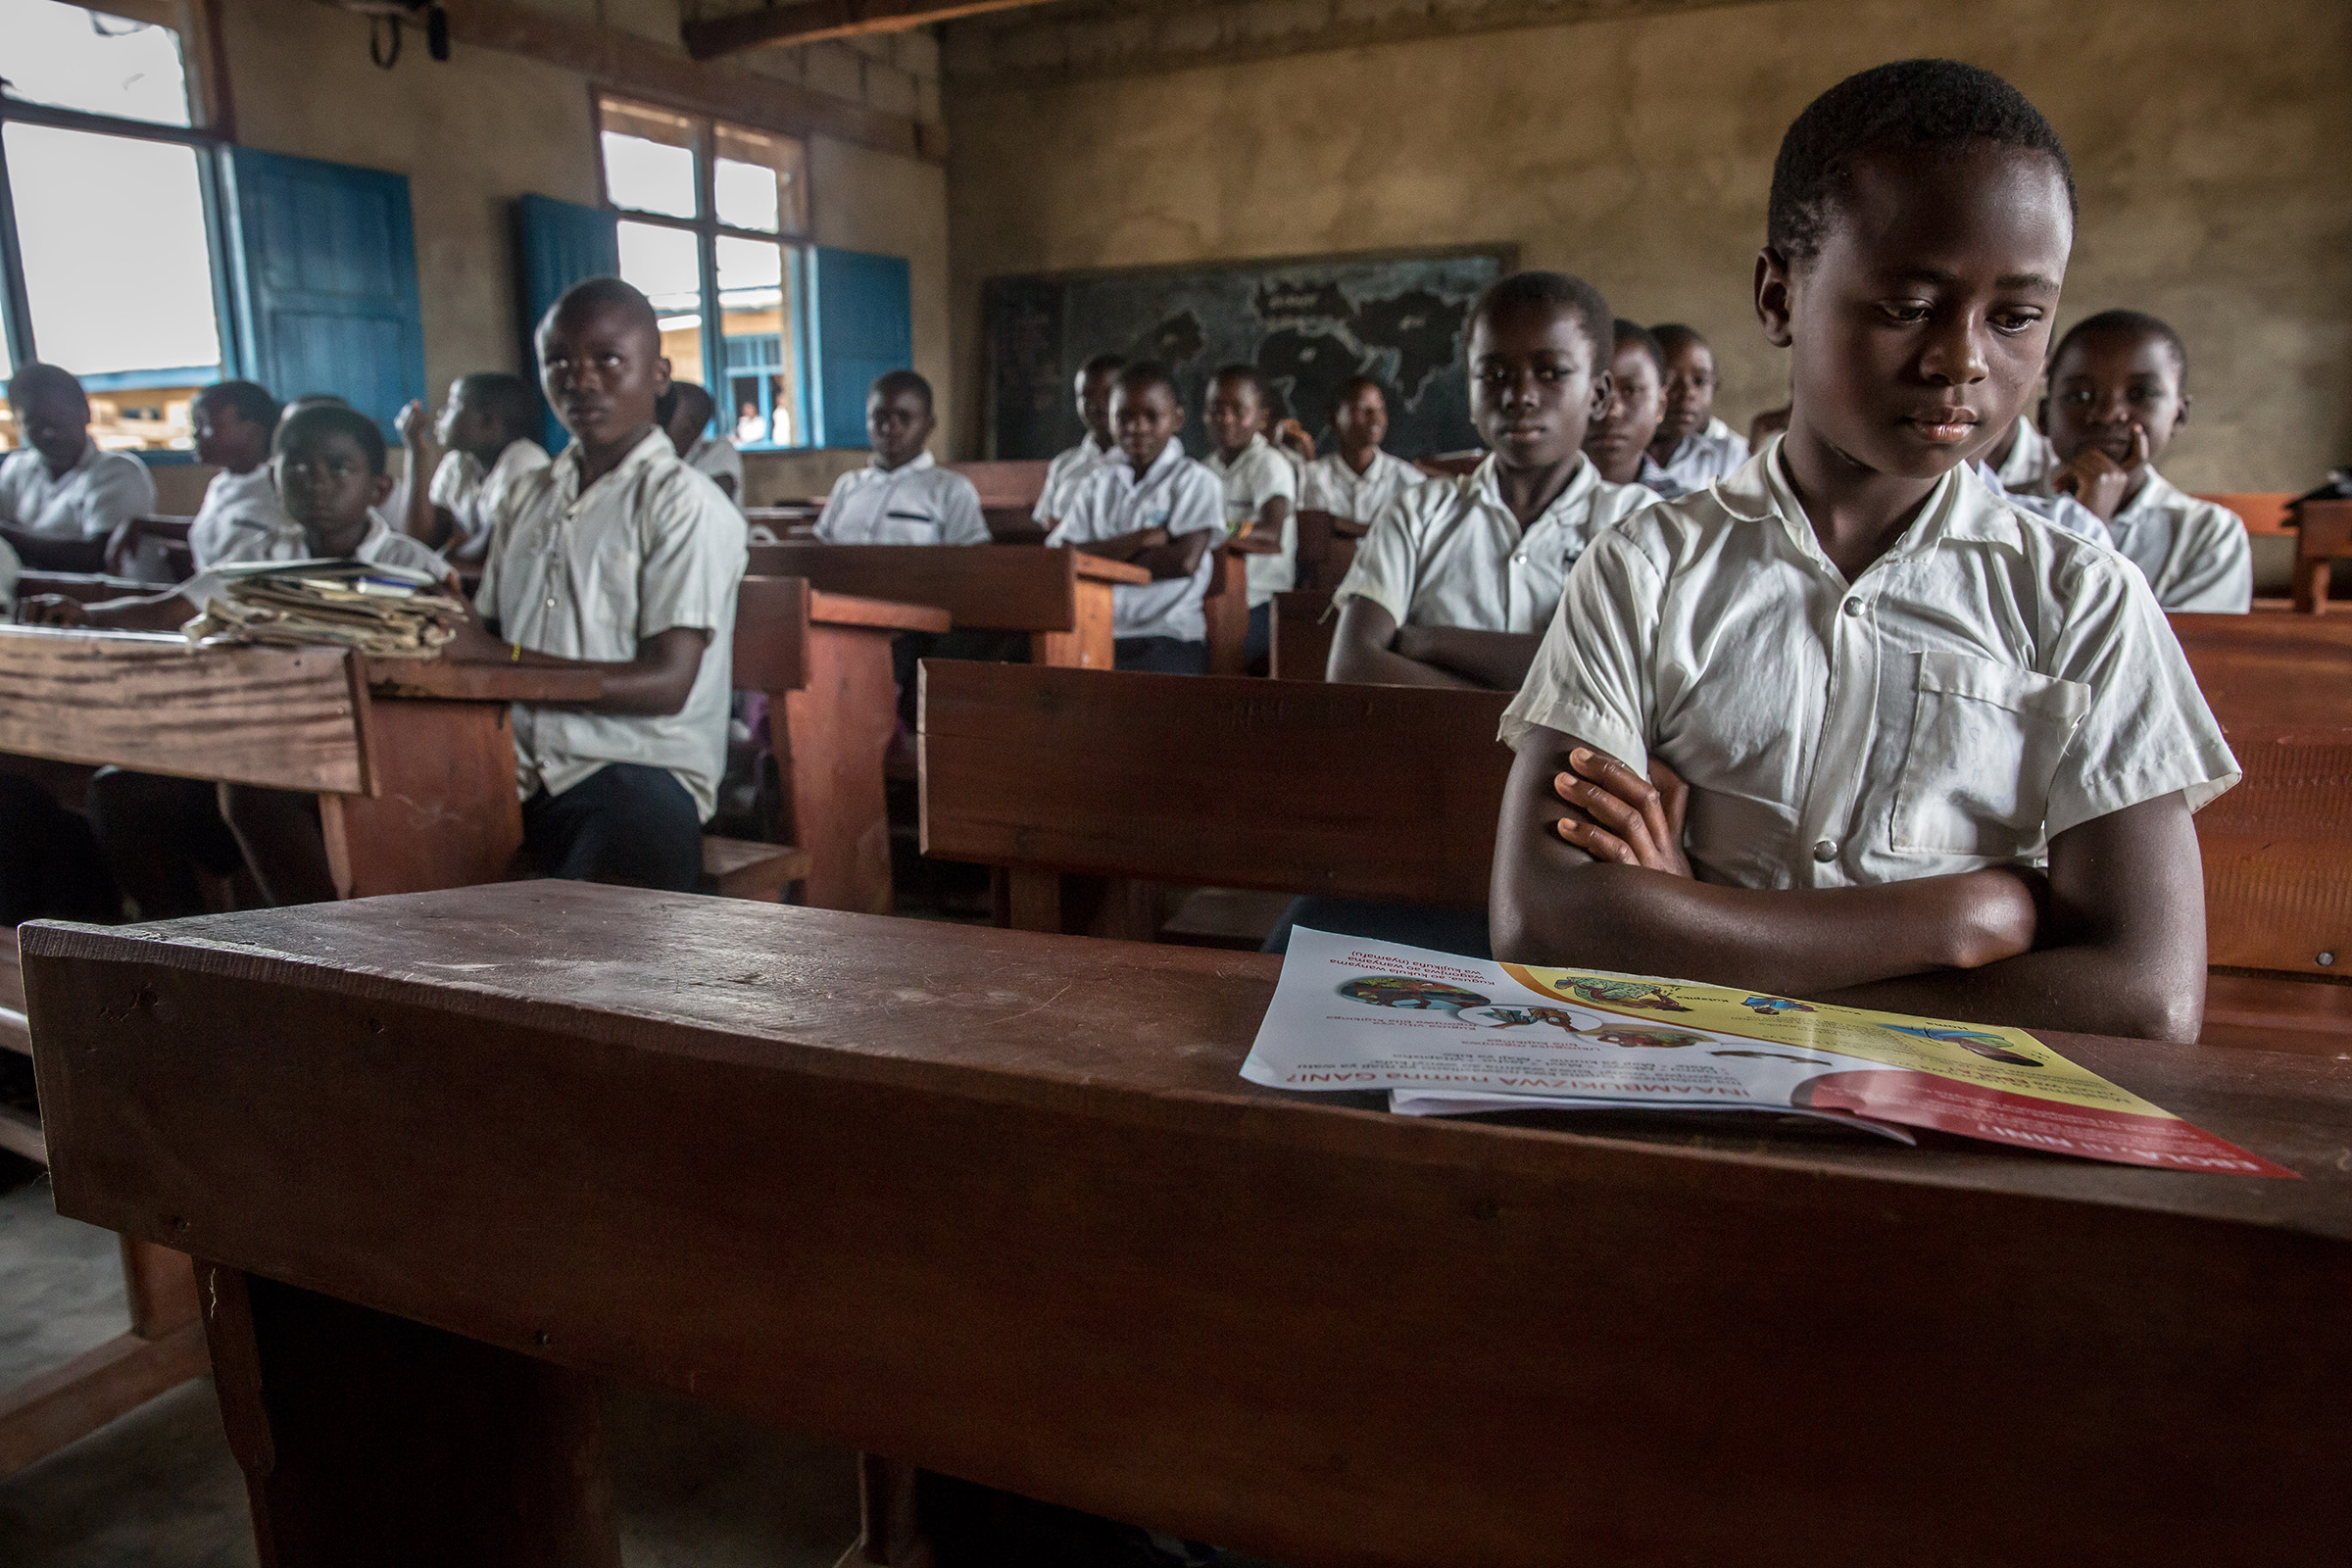 Students are taught about Ebola in a school in Beni, DRC, close to where the outbreak began last August. Heath workers believe by teaching children about the symptoms of Ebola they can educate some parents too.